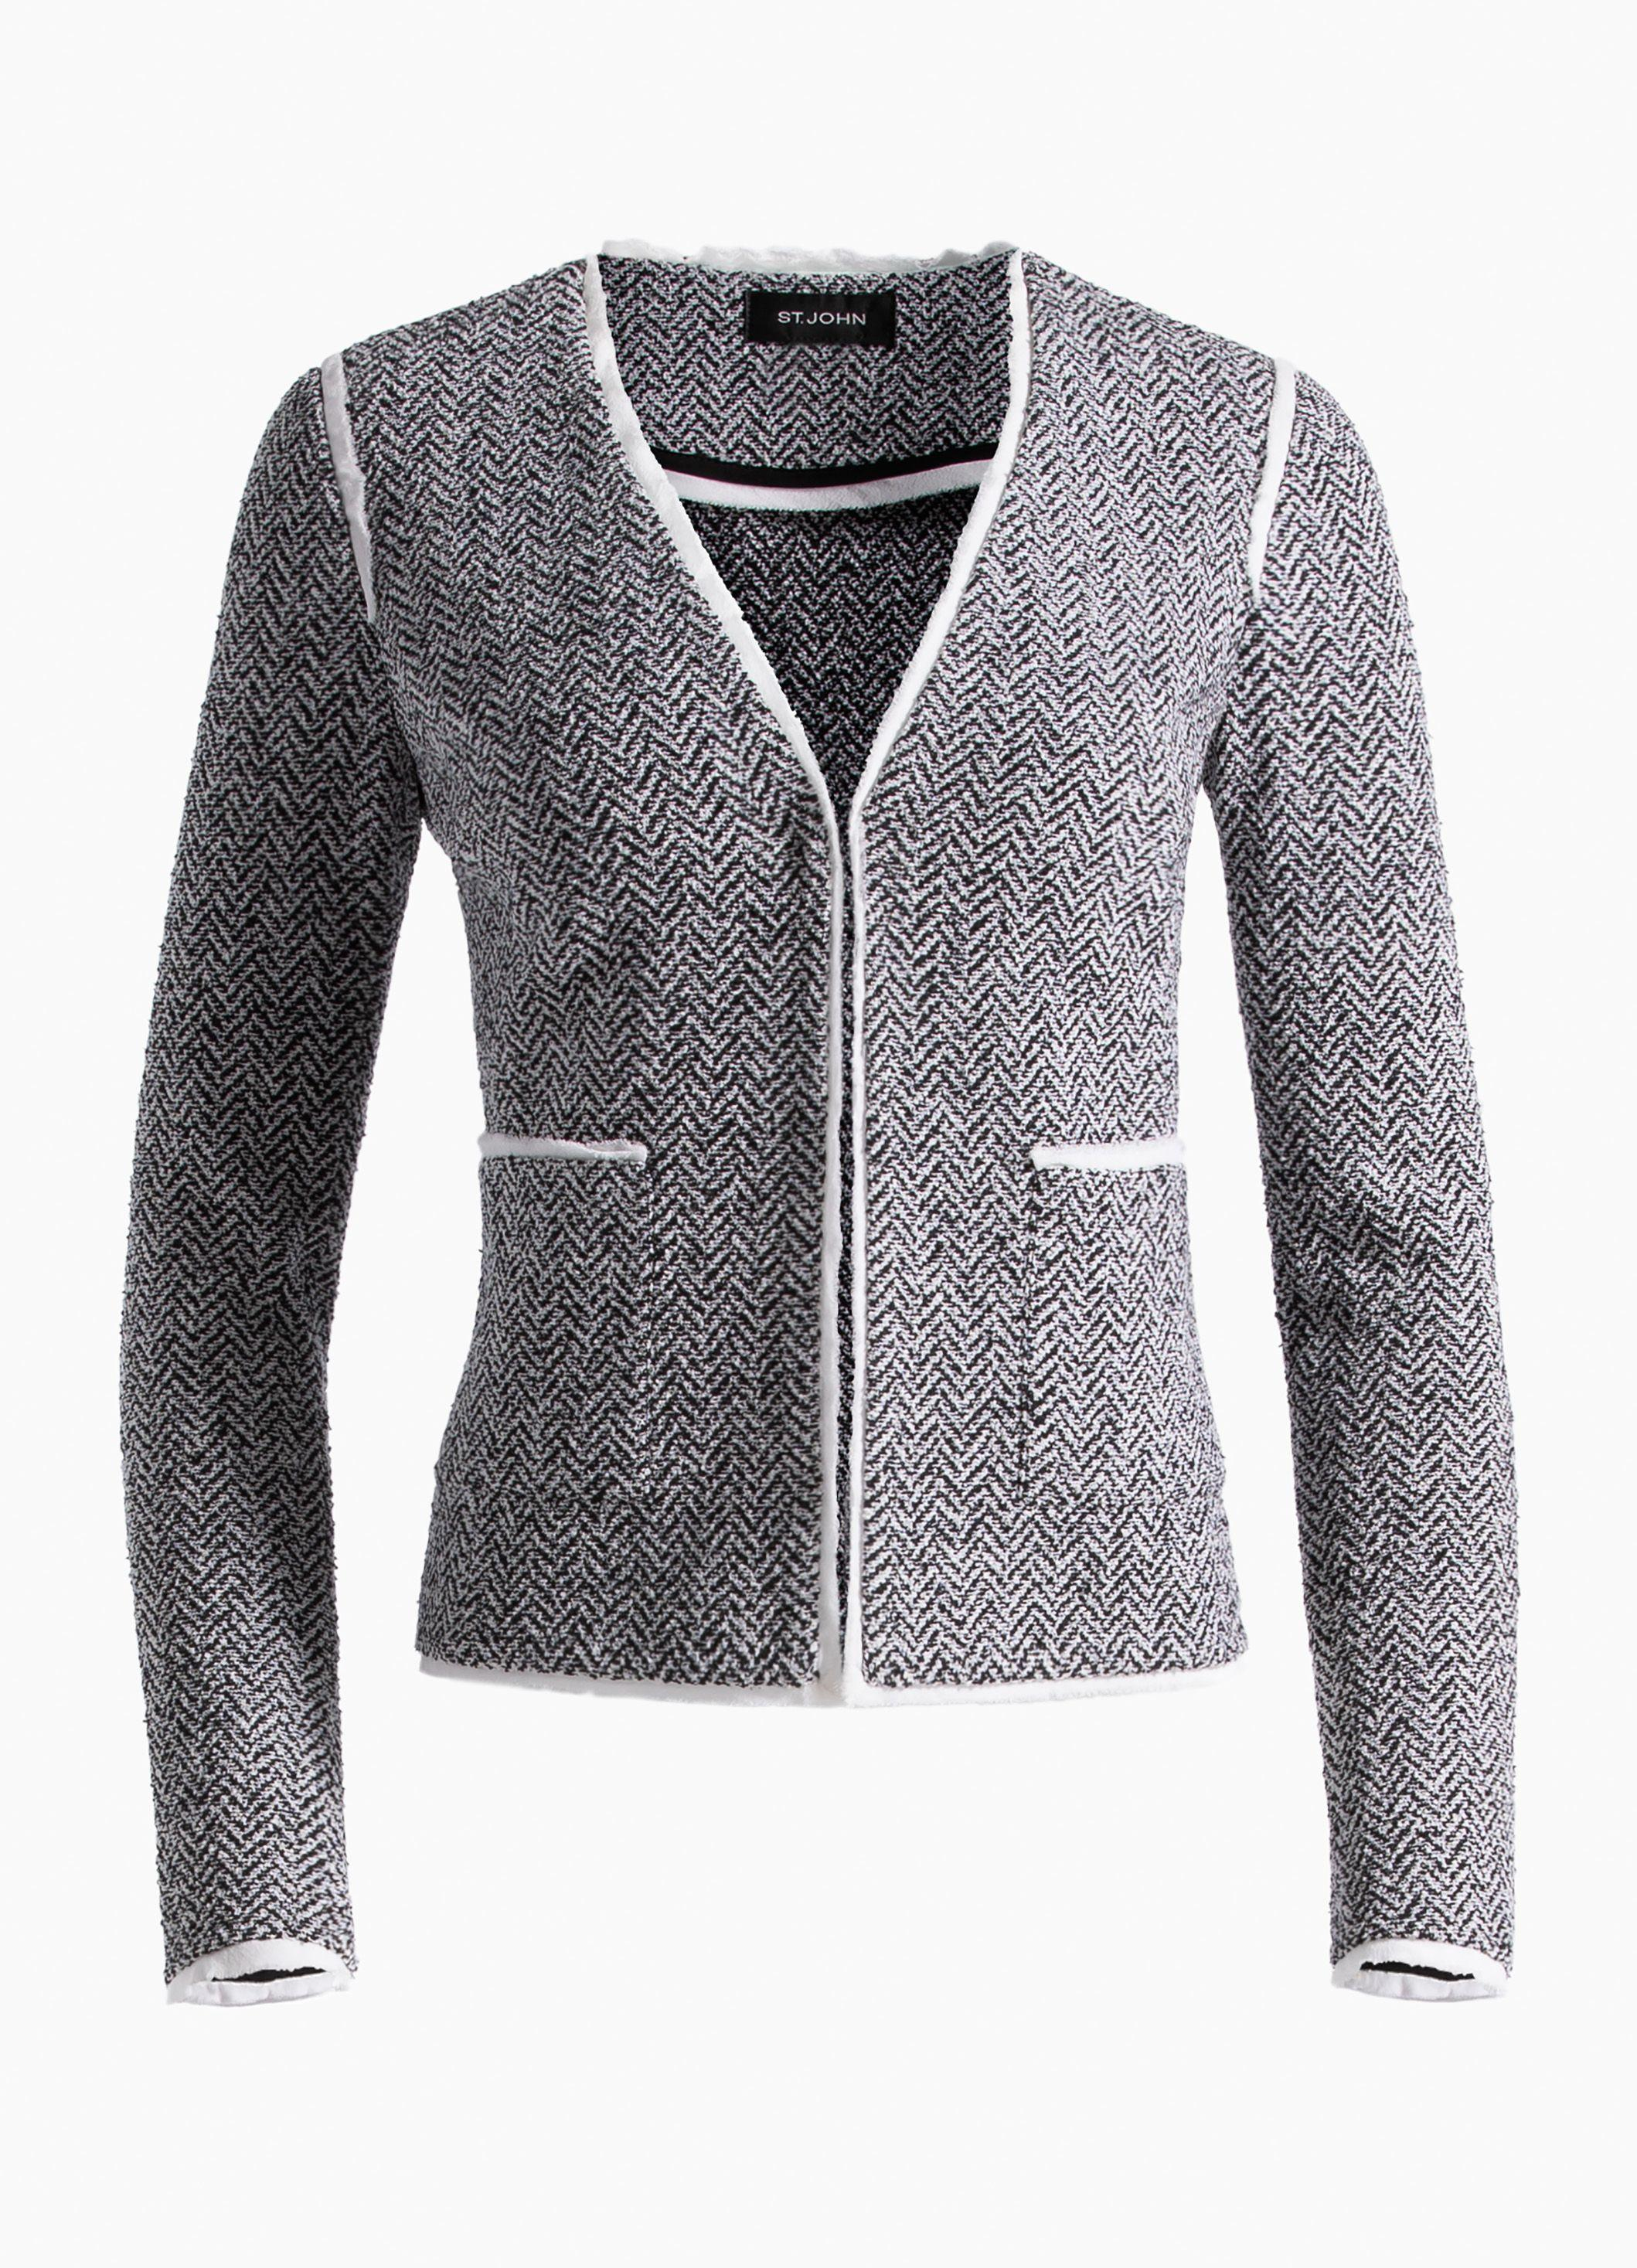 cf89f92b269 Lyst - St. John Abby Knit V-neck Jacket in Gray